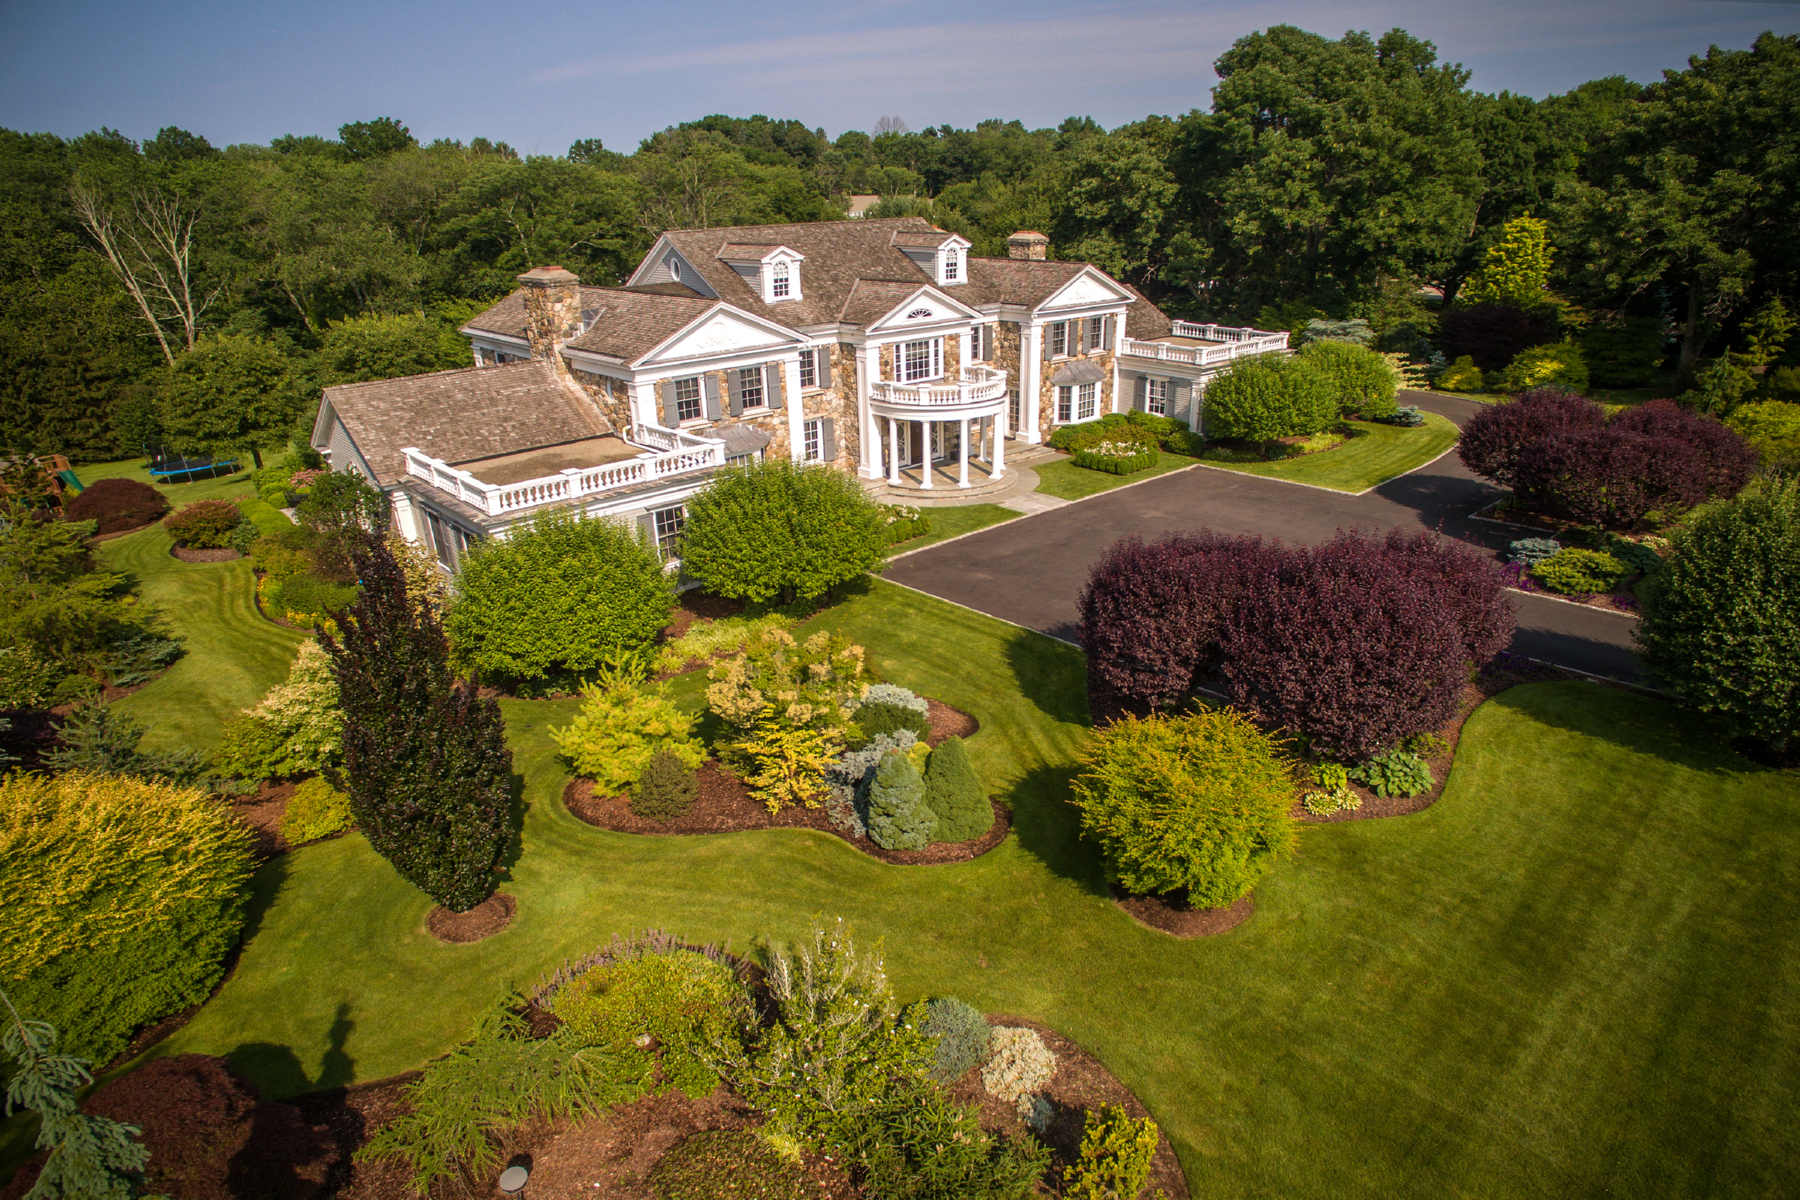 Single Family Home for Sale at New Canaan's Premier Property 712 Oenoke Ridge New Canaan, Connecticut, 06840 United States